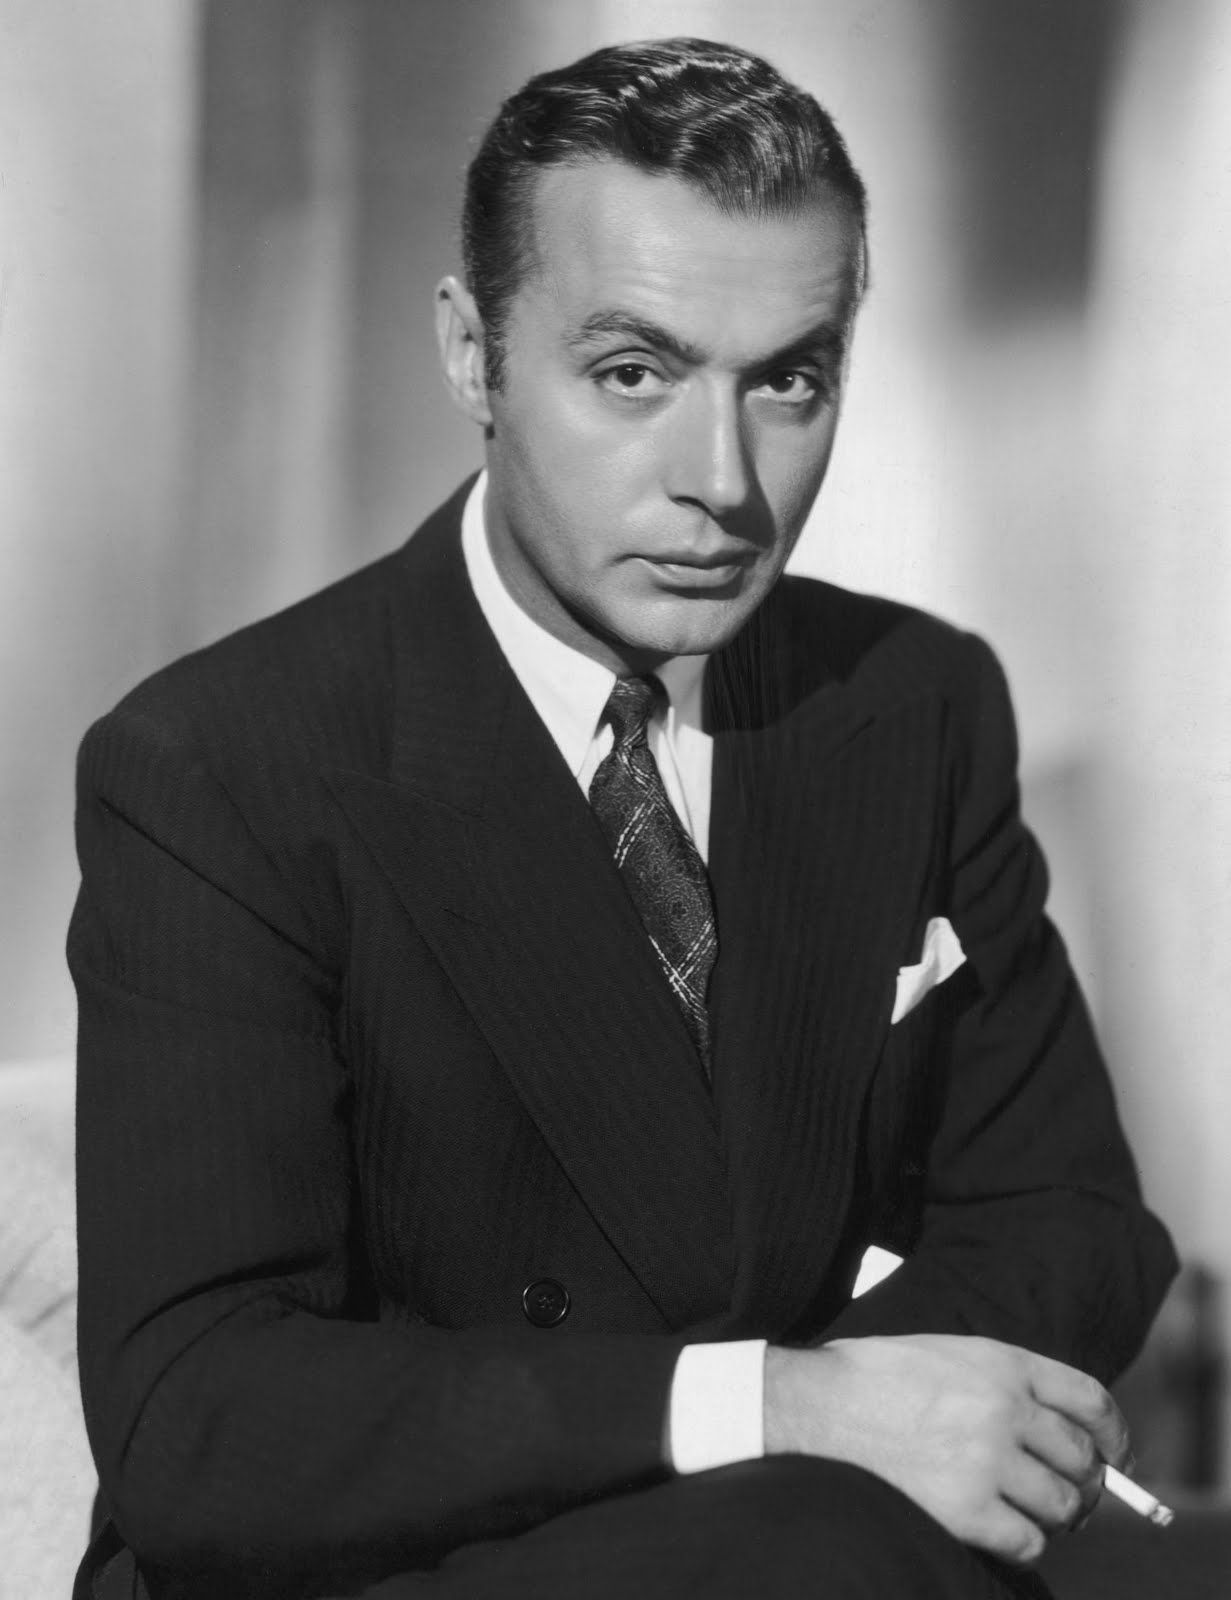 Charles Boyer was a French-born stage and film actor. Raised mostly by his mother as his father died when he was young, Boyer was always enchanted by movies and at 18 moved to Paris. He immediately found fame due to his face and natural talent. He starred in 70 films and is best known for his roles in Algiers and Love Affair. He was married for 44 years and committed suicide after his wife died.